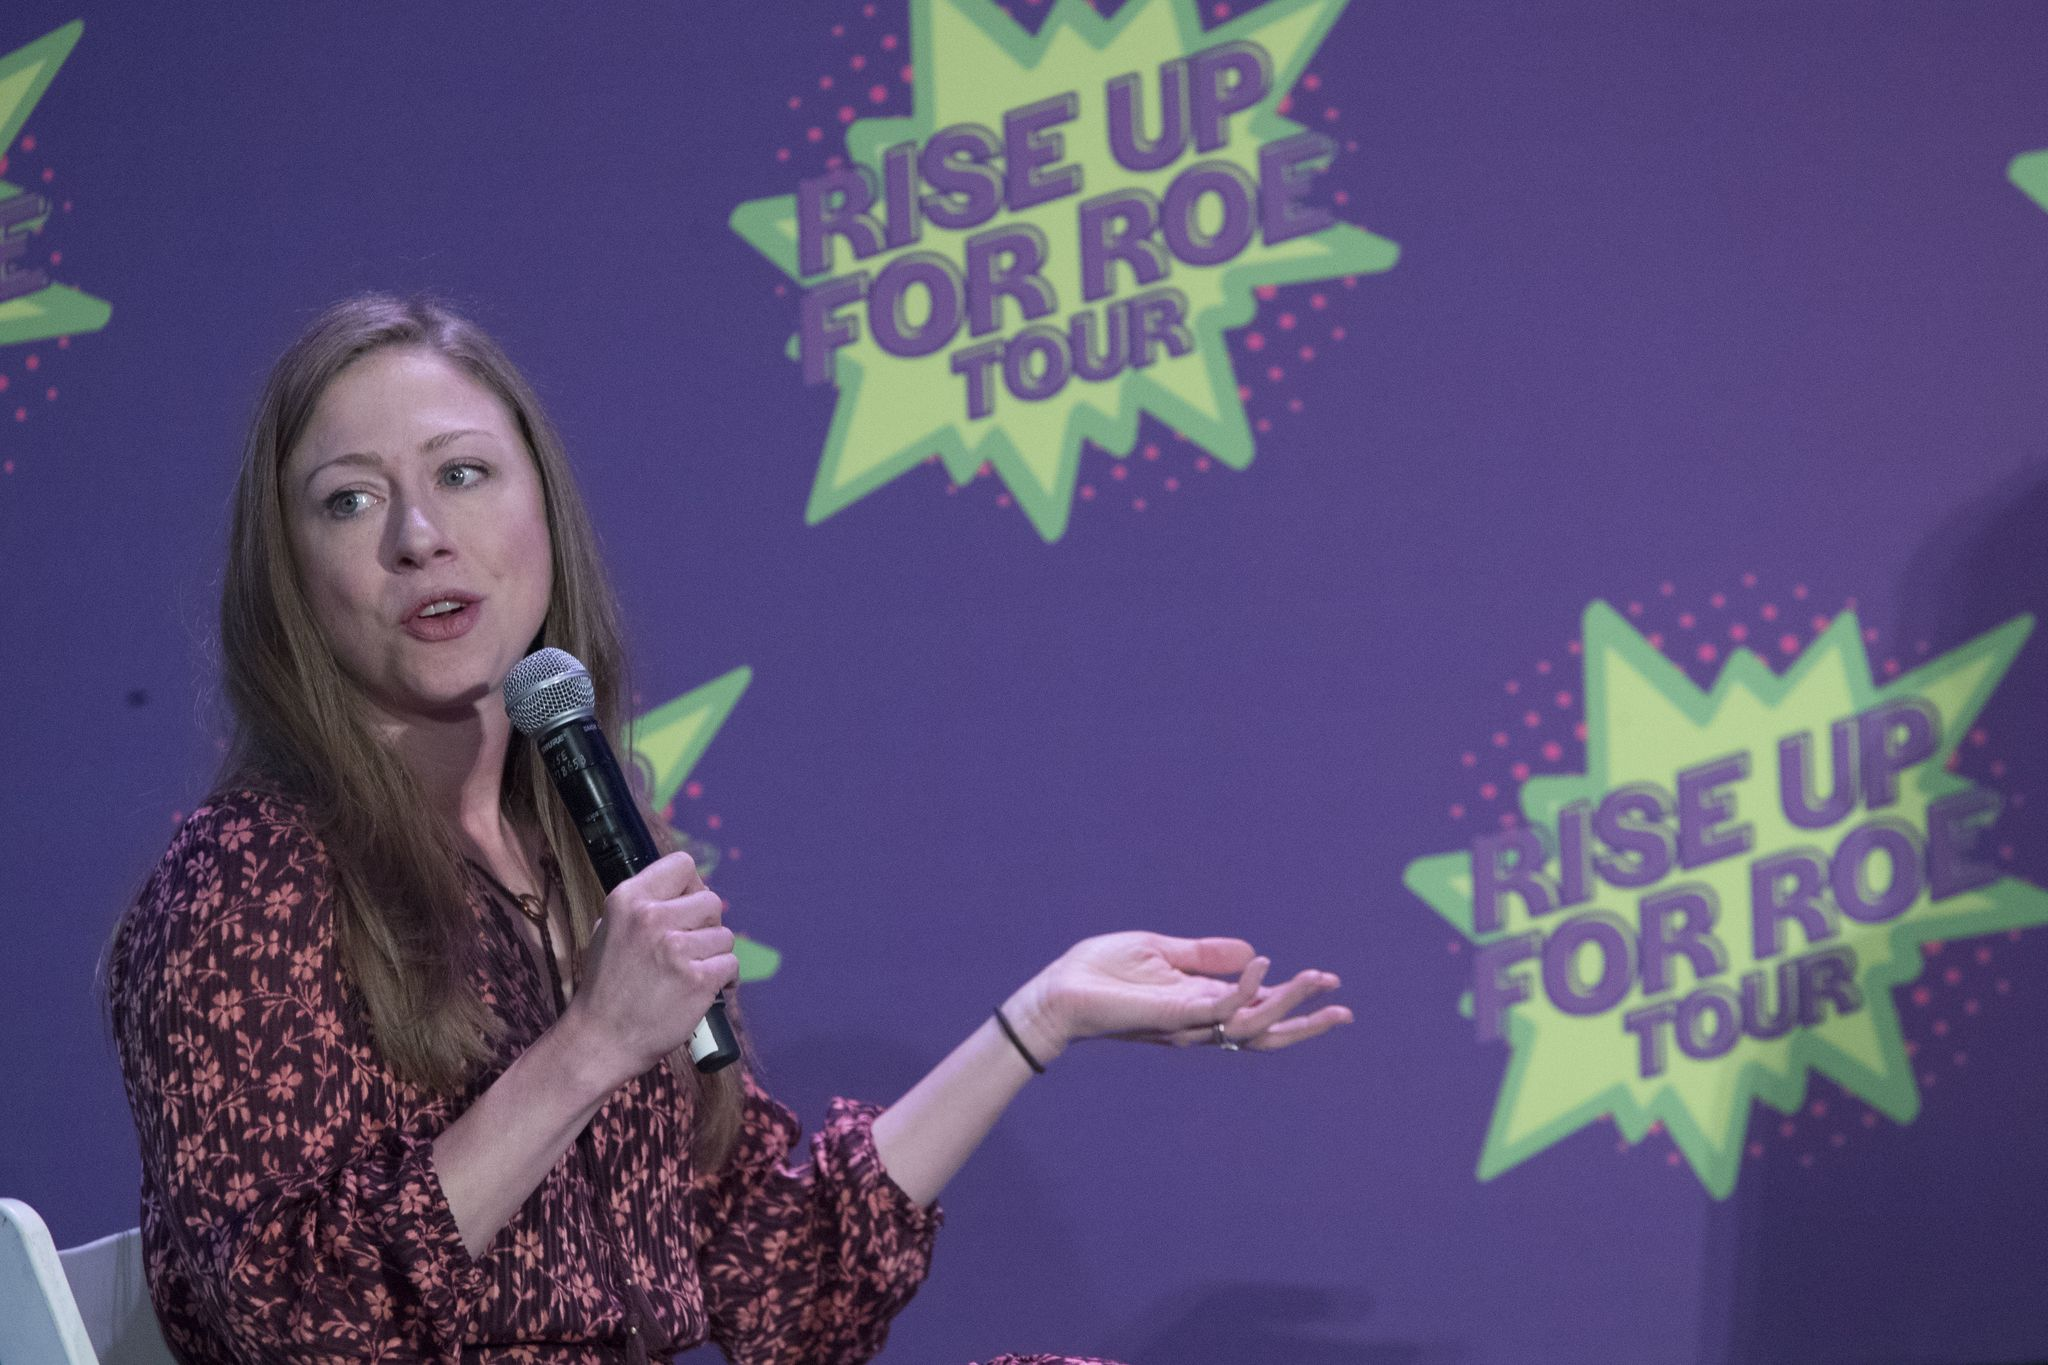 Chelsea Clinton: 'Unchristian' to end legal abortion - Washington Times